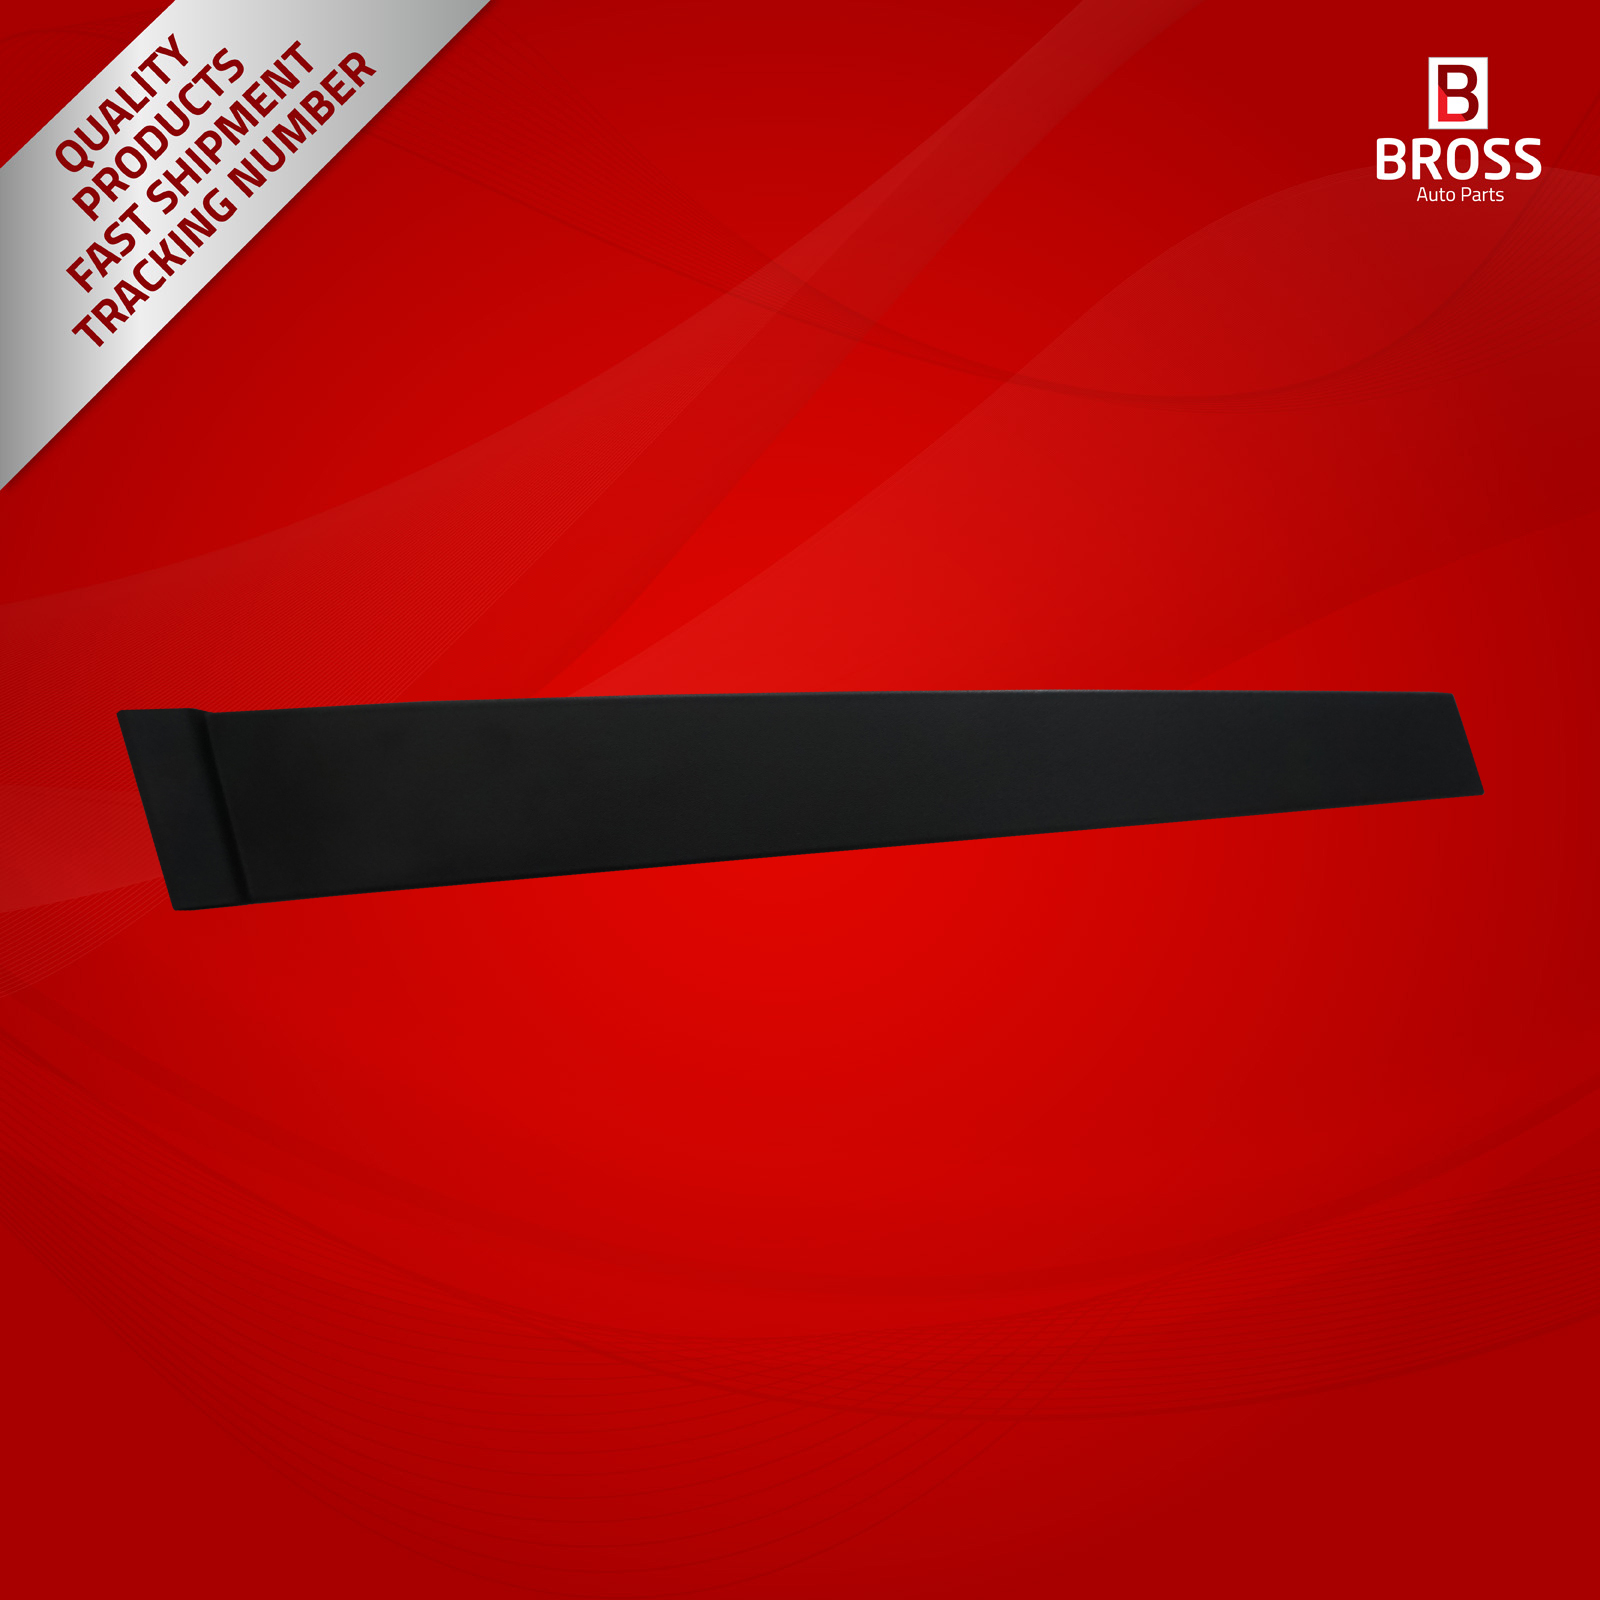 BDP871 Front LEFT Door Pillar Frame Trim Moulding 2S61A20899AM  1473674 With Sponge and Snap Ring Clips for Ford Fiesta MK5|Interior Door Panels & Parts| |  - title=